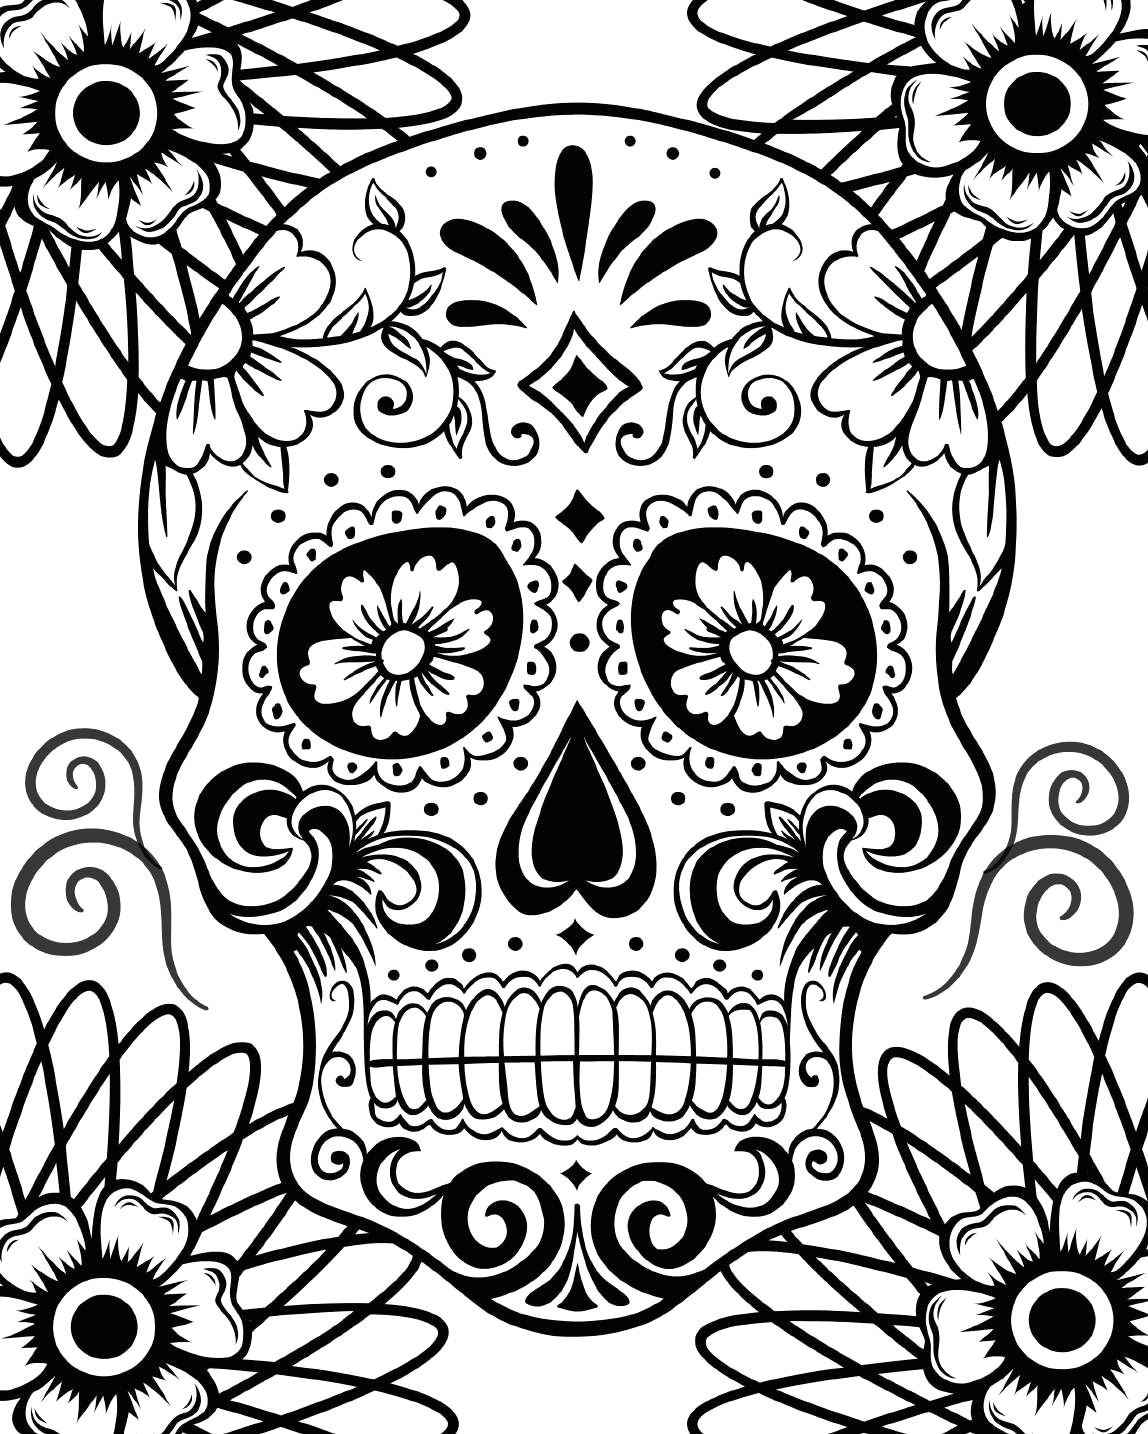 Day Of the Dead Coloring Pages to Print Free Printable Day Of the Dead Coloring Pages Best